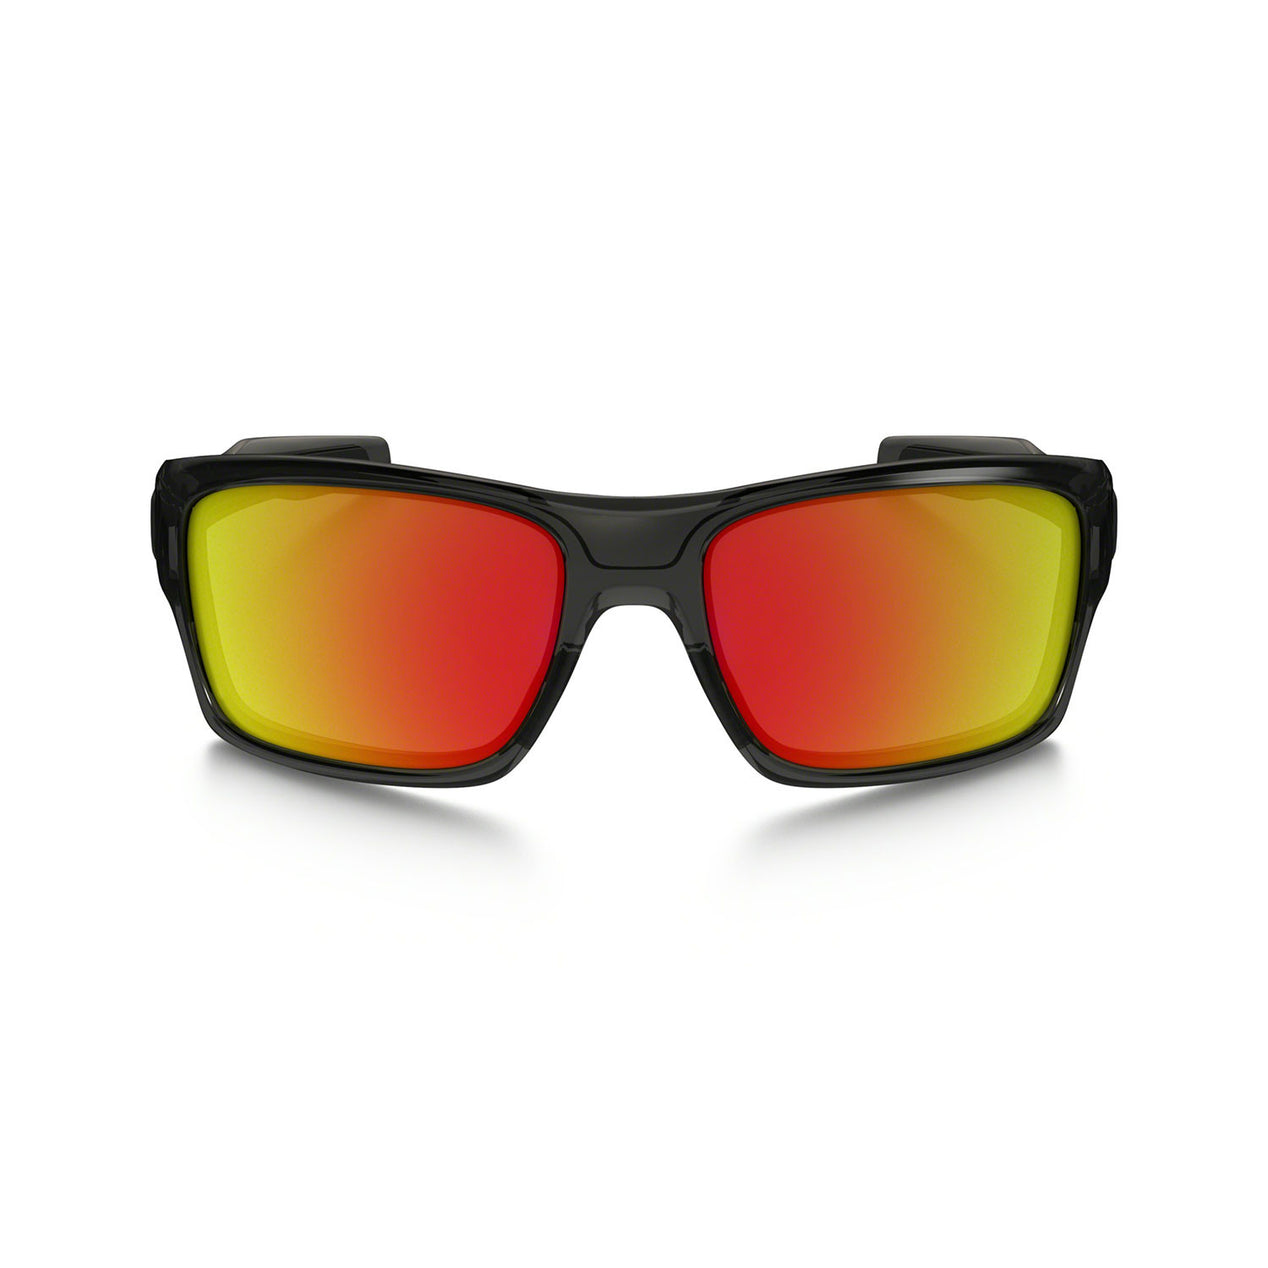 66280c6c2a ... Turbine XS (Youth Fit) - Grey Smoke - Ruby Iridium Lens Sunglasses  thumb ...